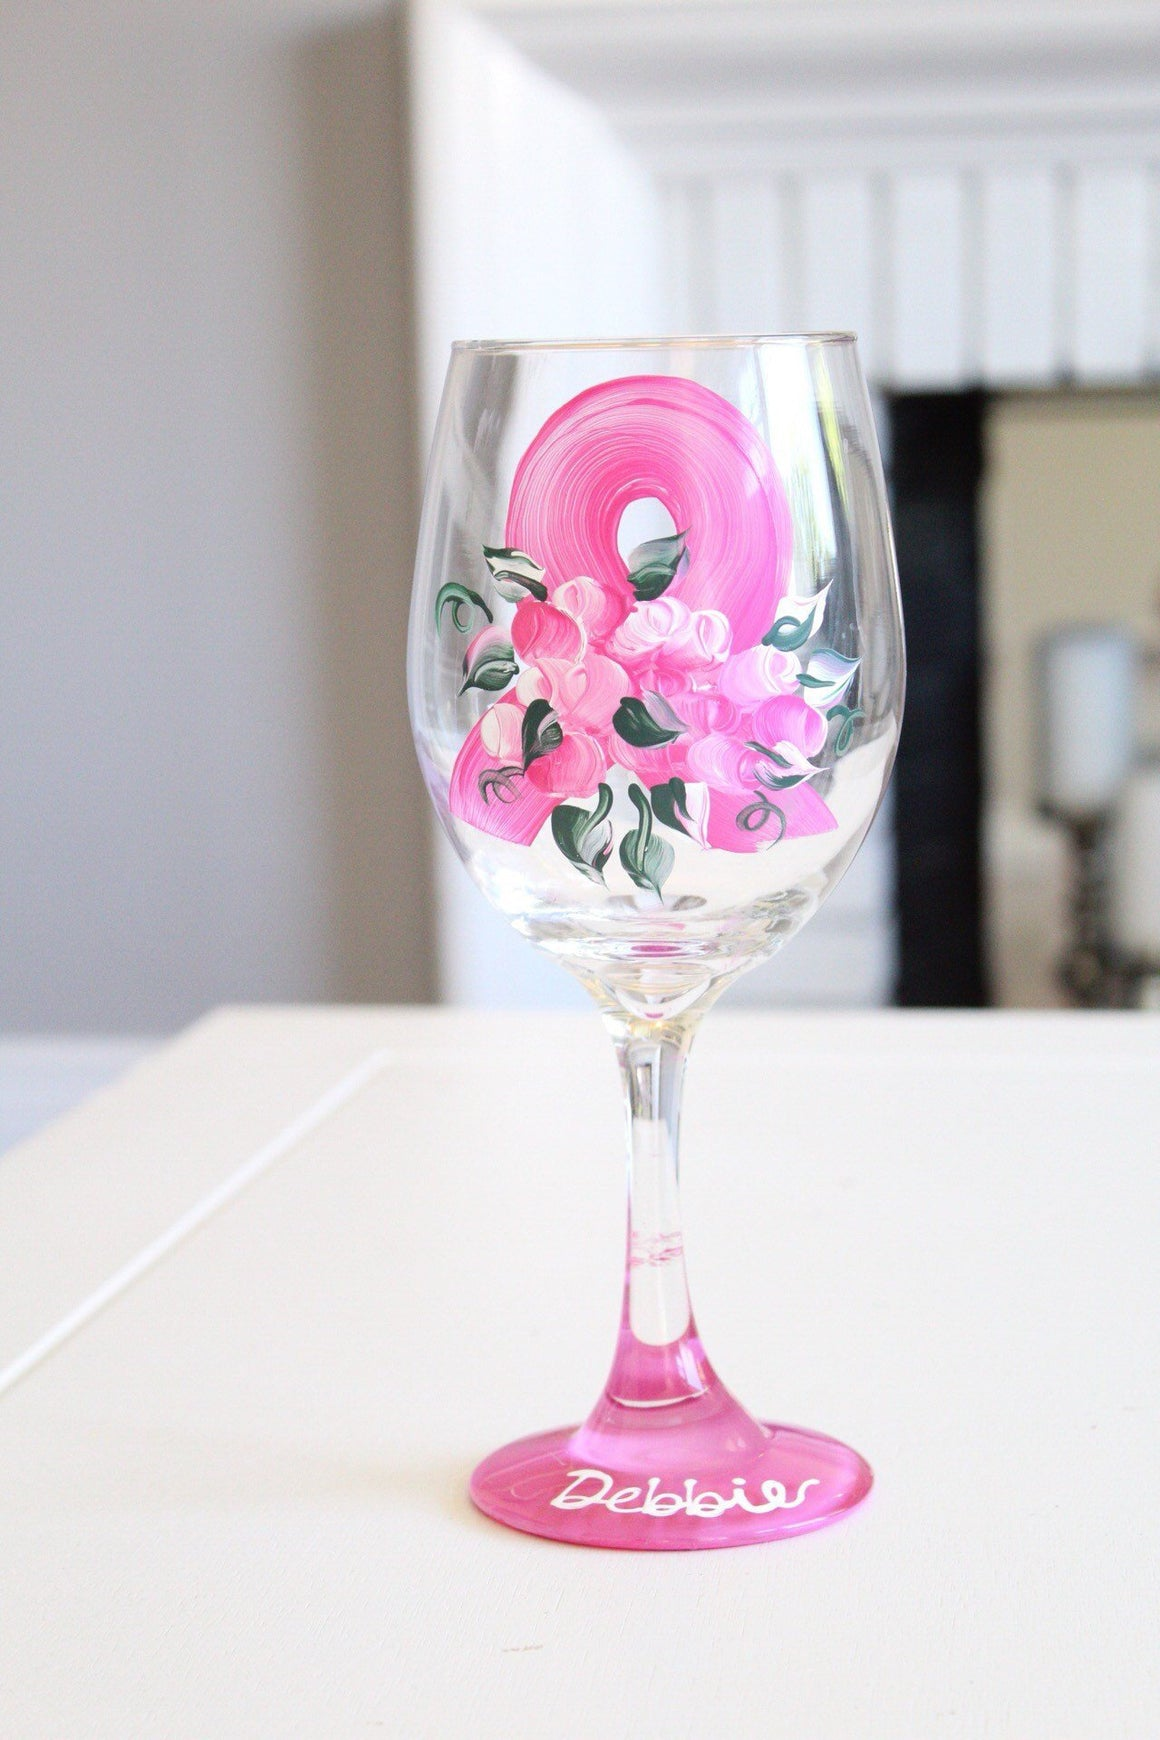 Pink ribbon wine glass- breast cancer survivor wine glass- hand painted wine glass- Survivor wine glass- Support breast cancer- awareness